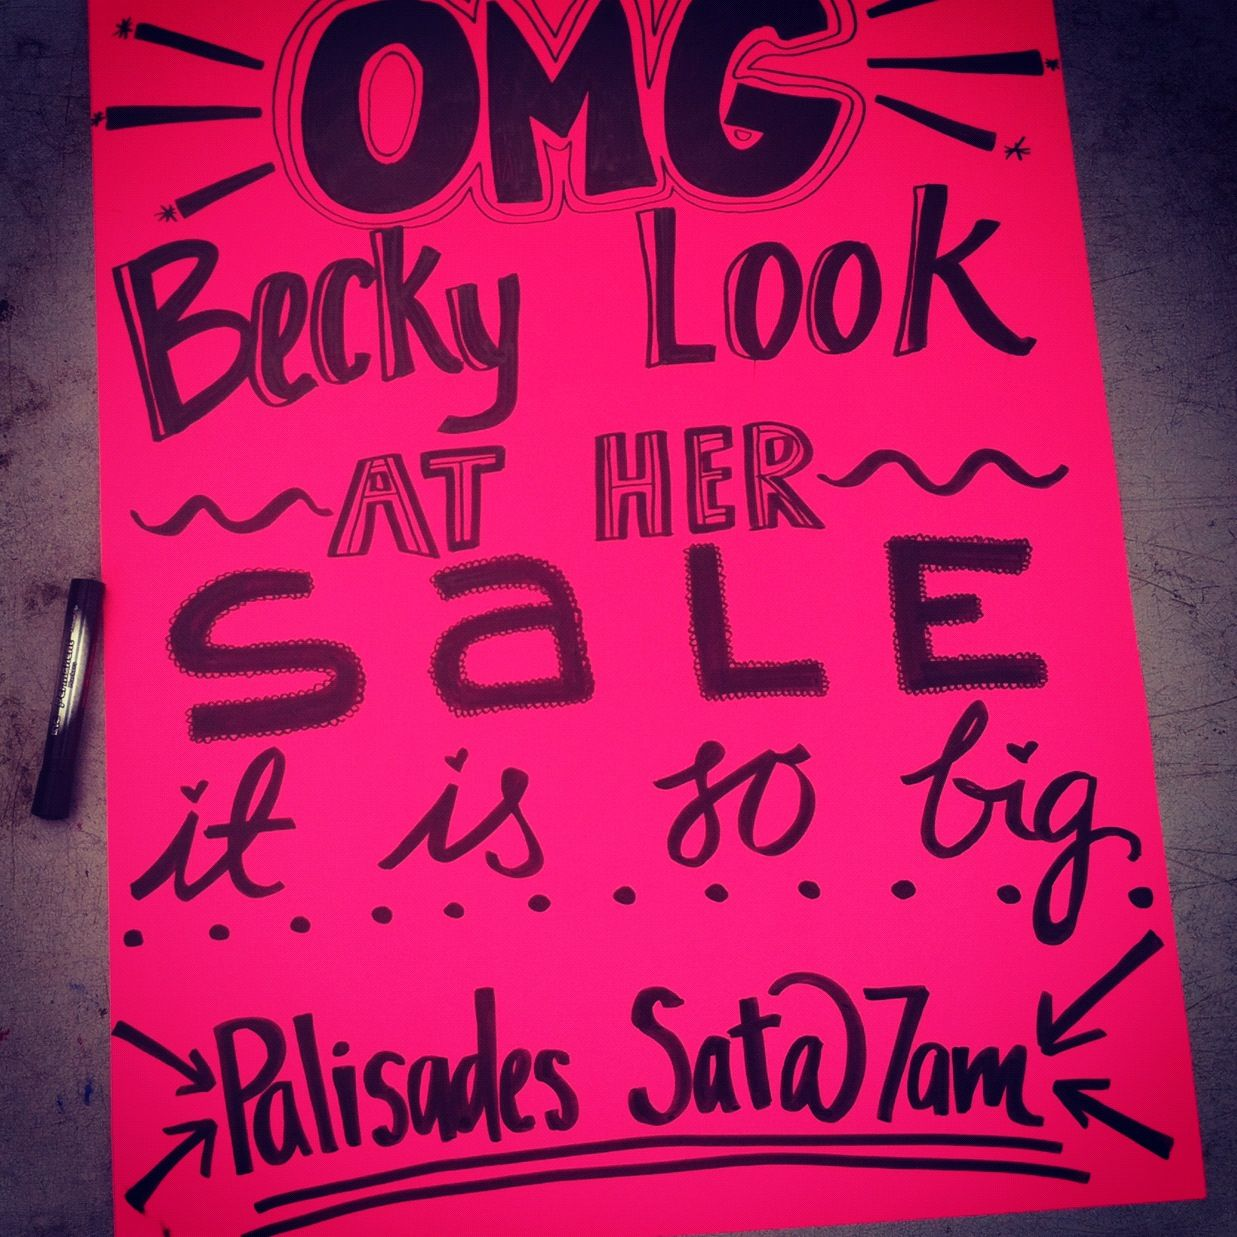 17 Best images about Garage sale sign ideas on Pinterest   Funny ...